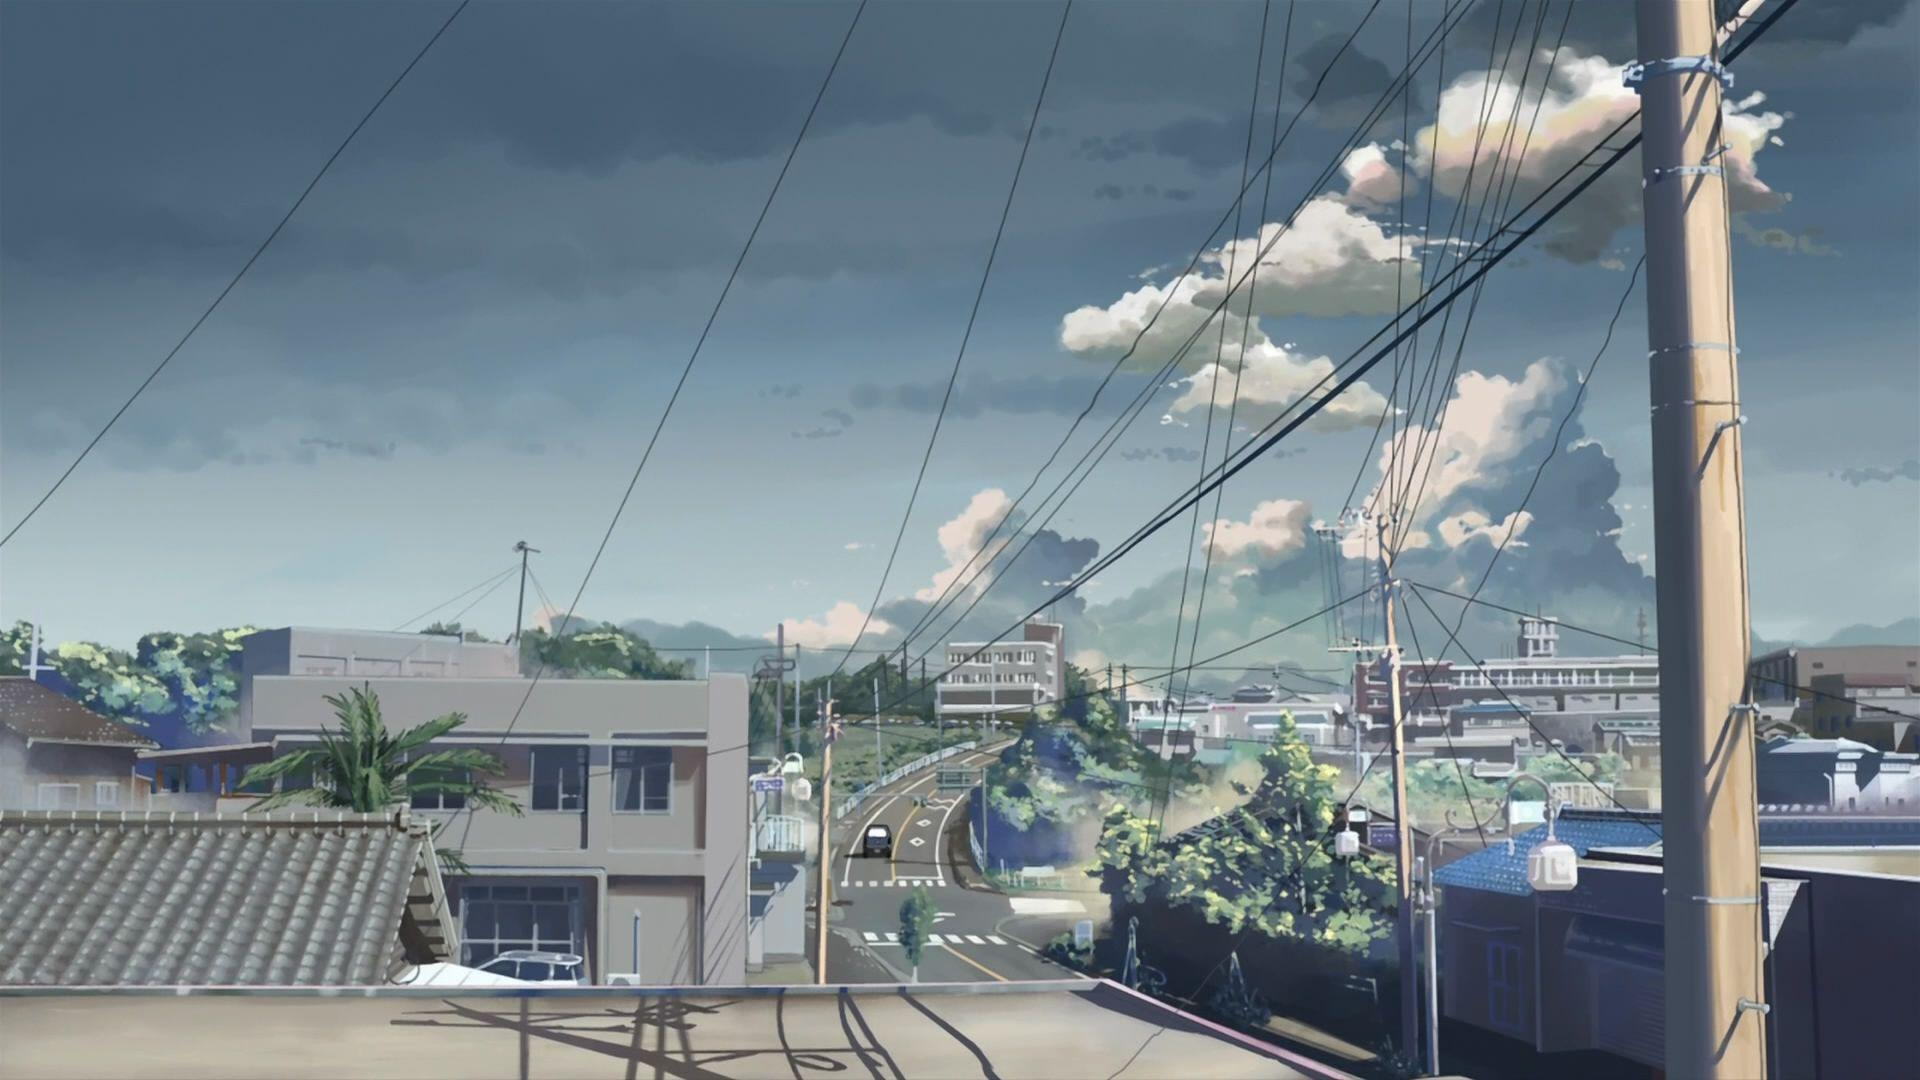 Anime City Backgrounds image information